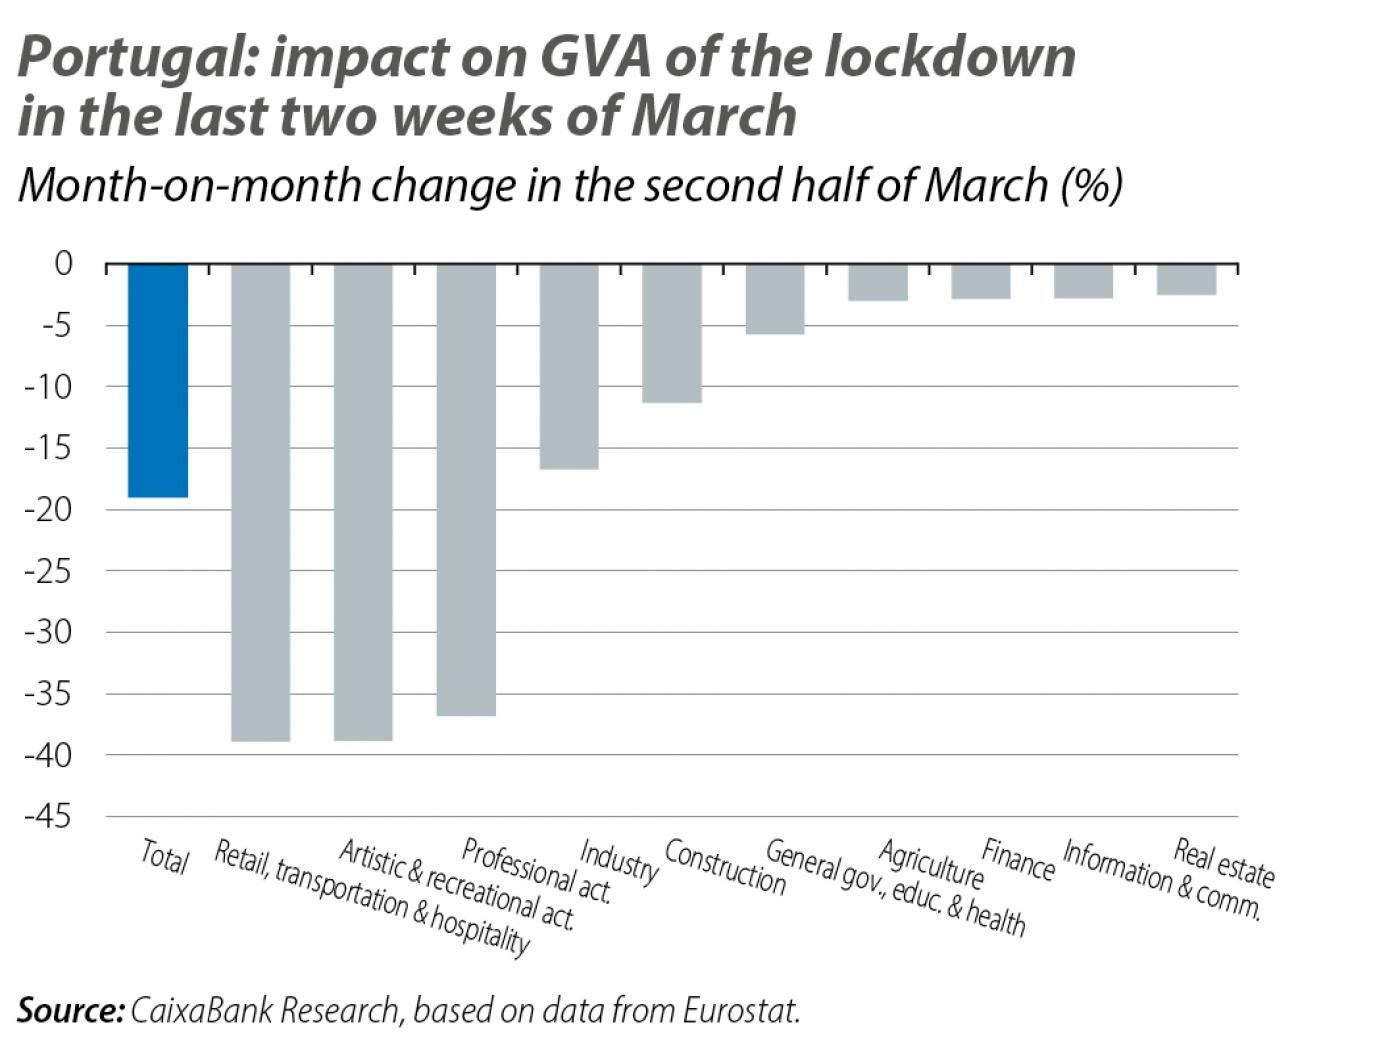 Portugal: impact on GVA of the lockdown in the last two weeks of March